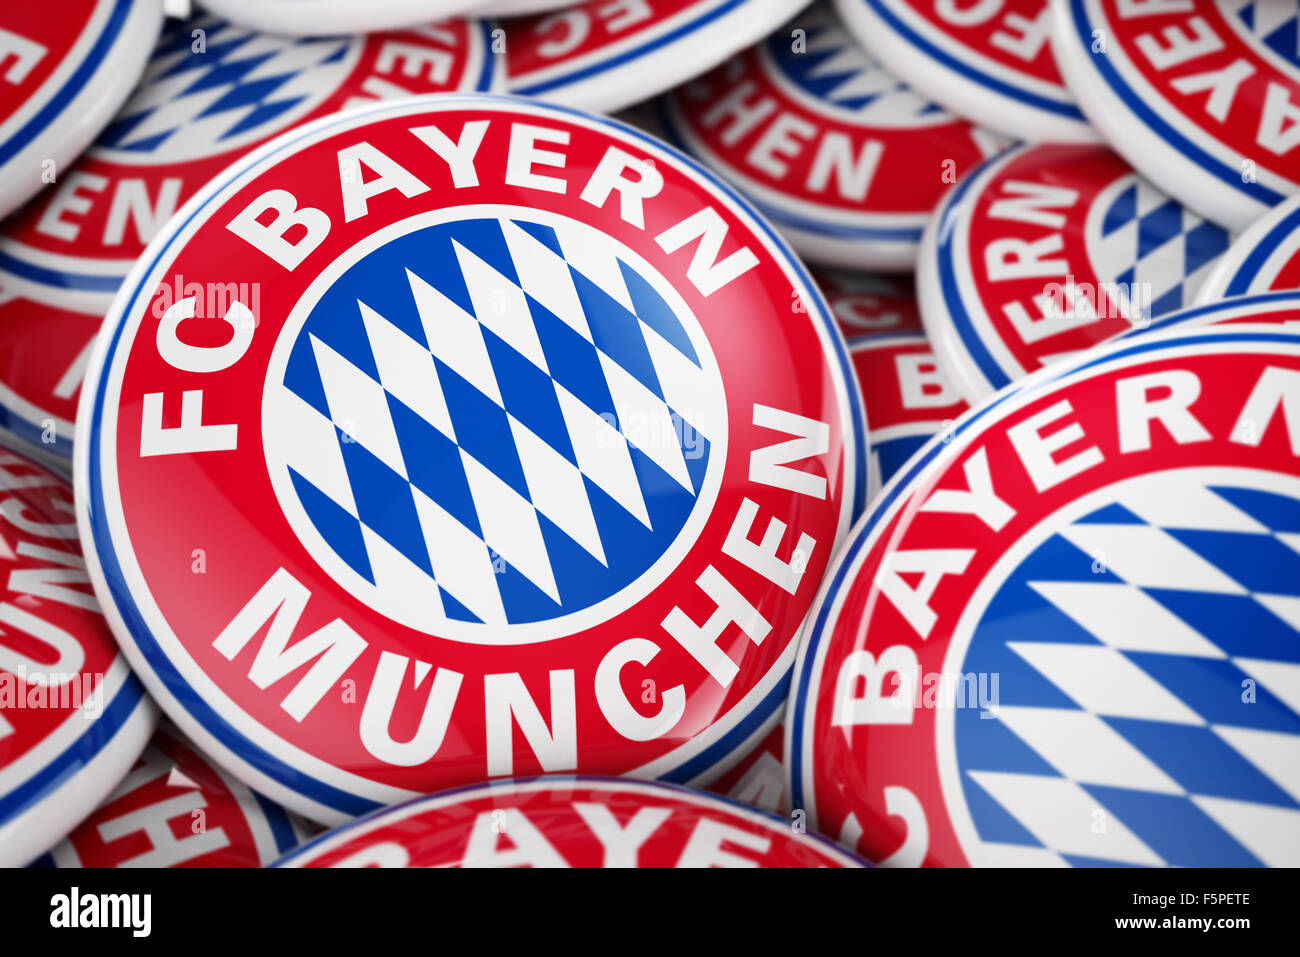 Bayern München buttons - Stock Image